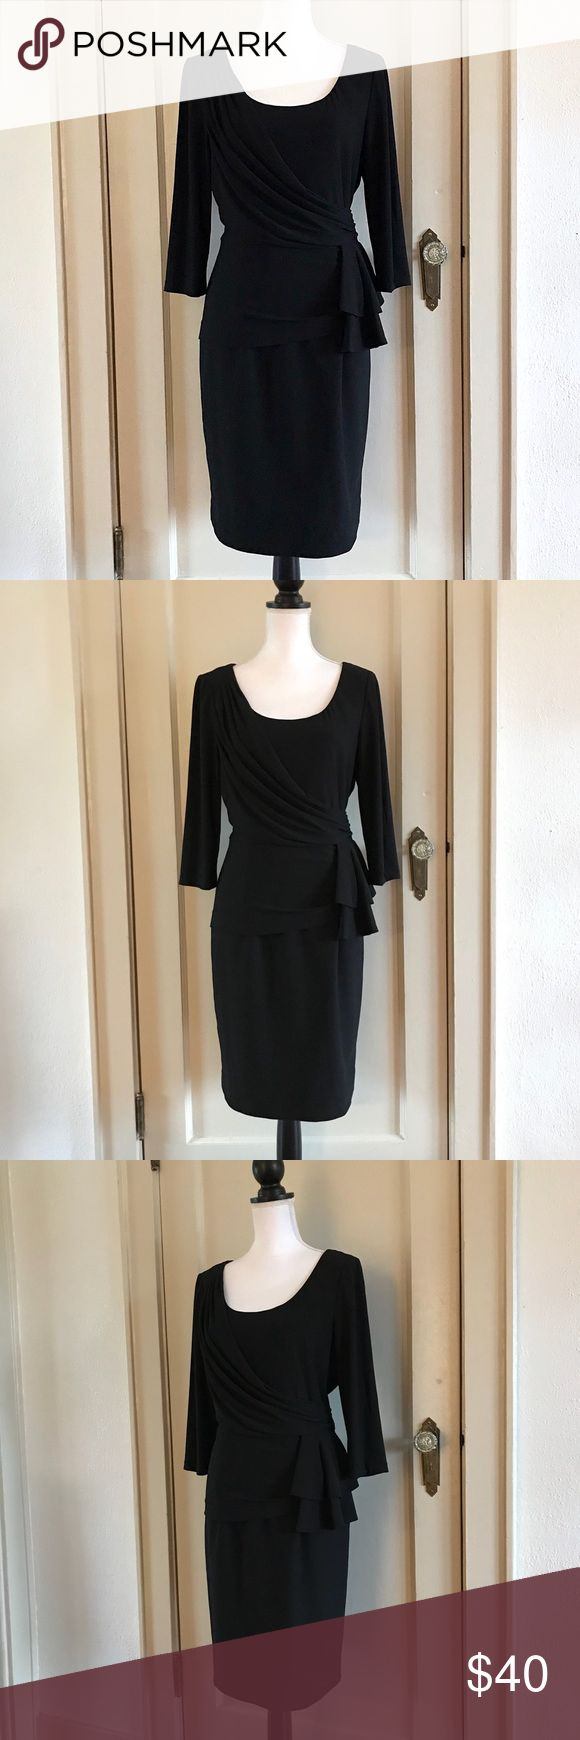 "KAY UNGER - Black 3/4 Sleeve Ruffle Tiered Dress L KAY UNGER Black Ruffle Tiered 3/4th Sleeve Dress  Size 12 / Large Great Pre-Owned Condition! Retail: $245.00  Approximate Measurements (flat): Waist - 16.5"" Bust - 20"" Length - 38"" Sleeve - 17.5""  Shell: 96% Polyester, 4% Spandex Lining: 100% Polyester  *Item was pinned to better fit the mannequin for the images, they do not represent the actual size of the item*   Bundles Welcome! NO PAYPAL! Please allow 2 days handling!  Thank you! 😊 Kay…"